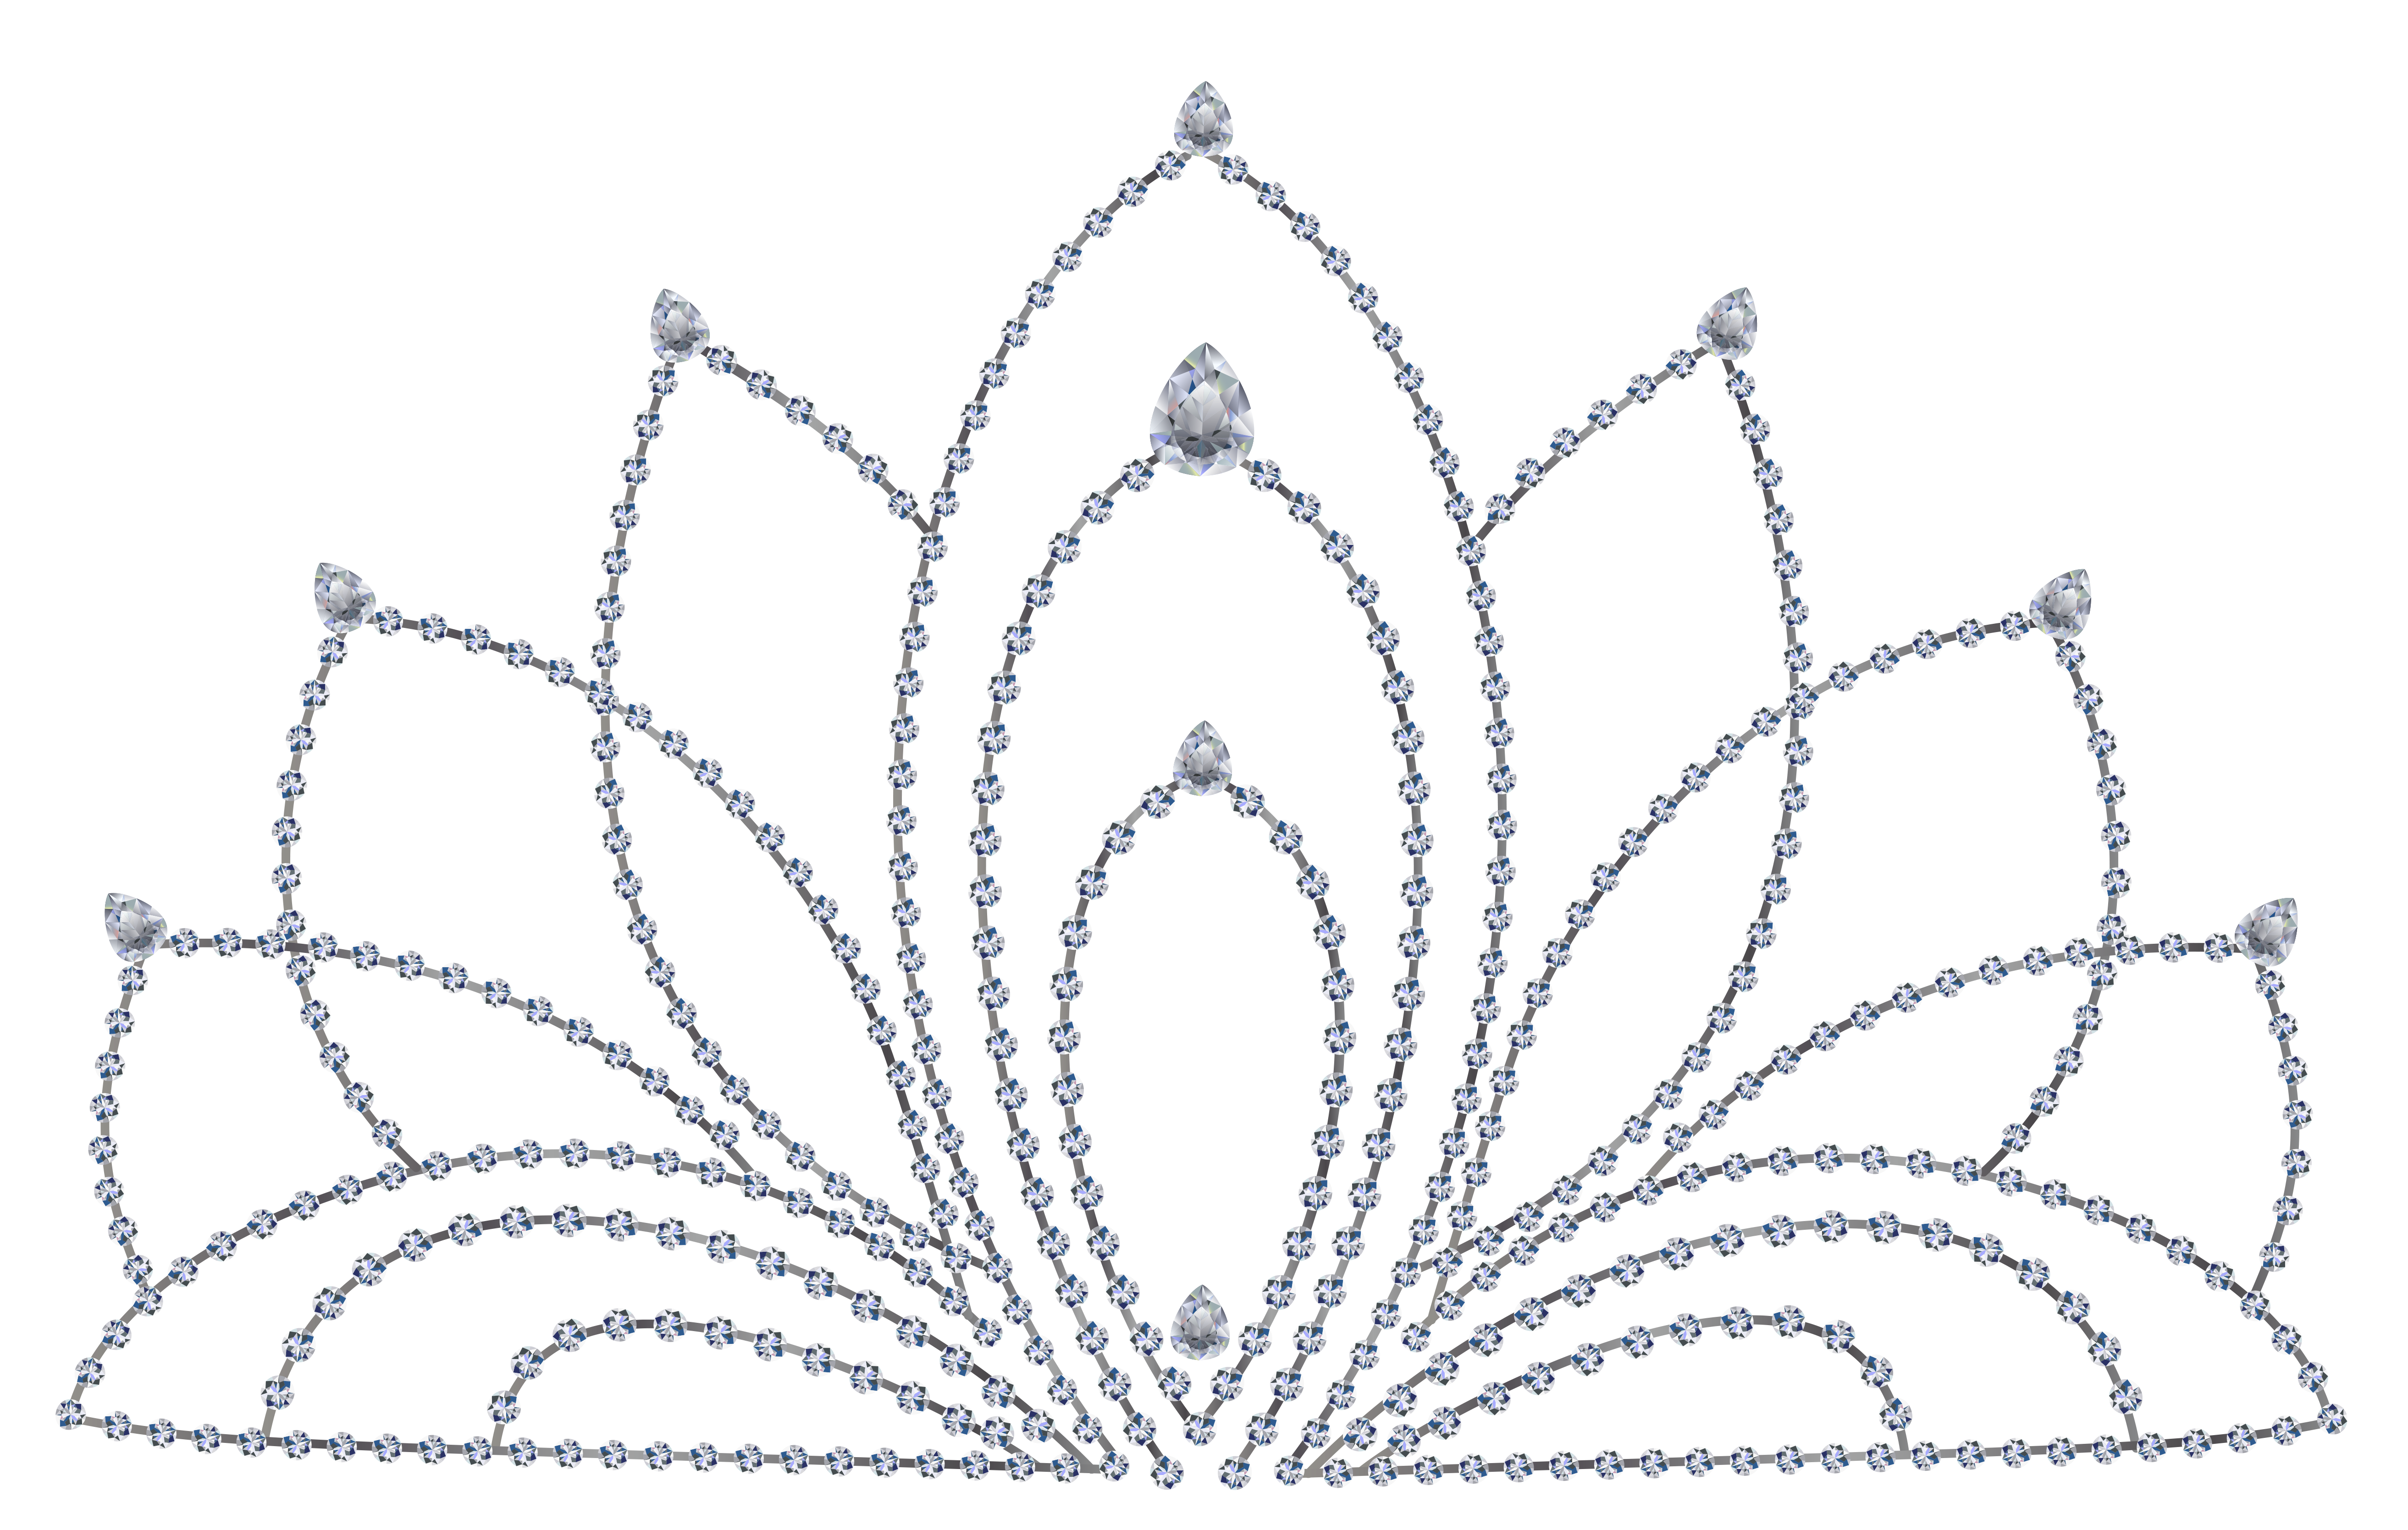 Crown and diamond clipart graphic download Tiara Crown Clip art - Diamond Tiara PNG Clipart 5252*3338 ... graphic download